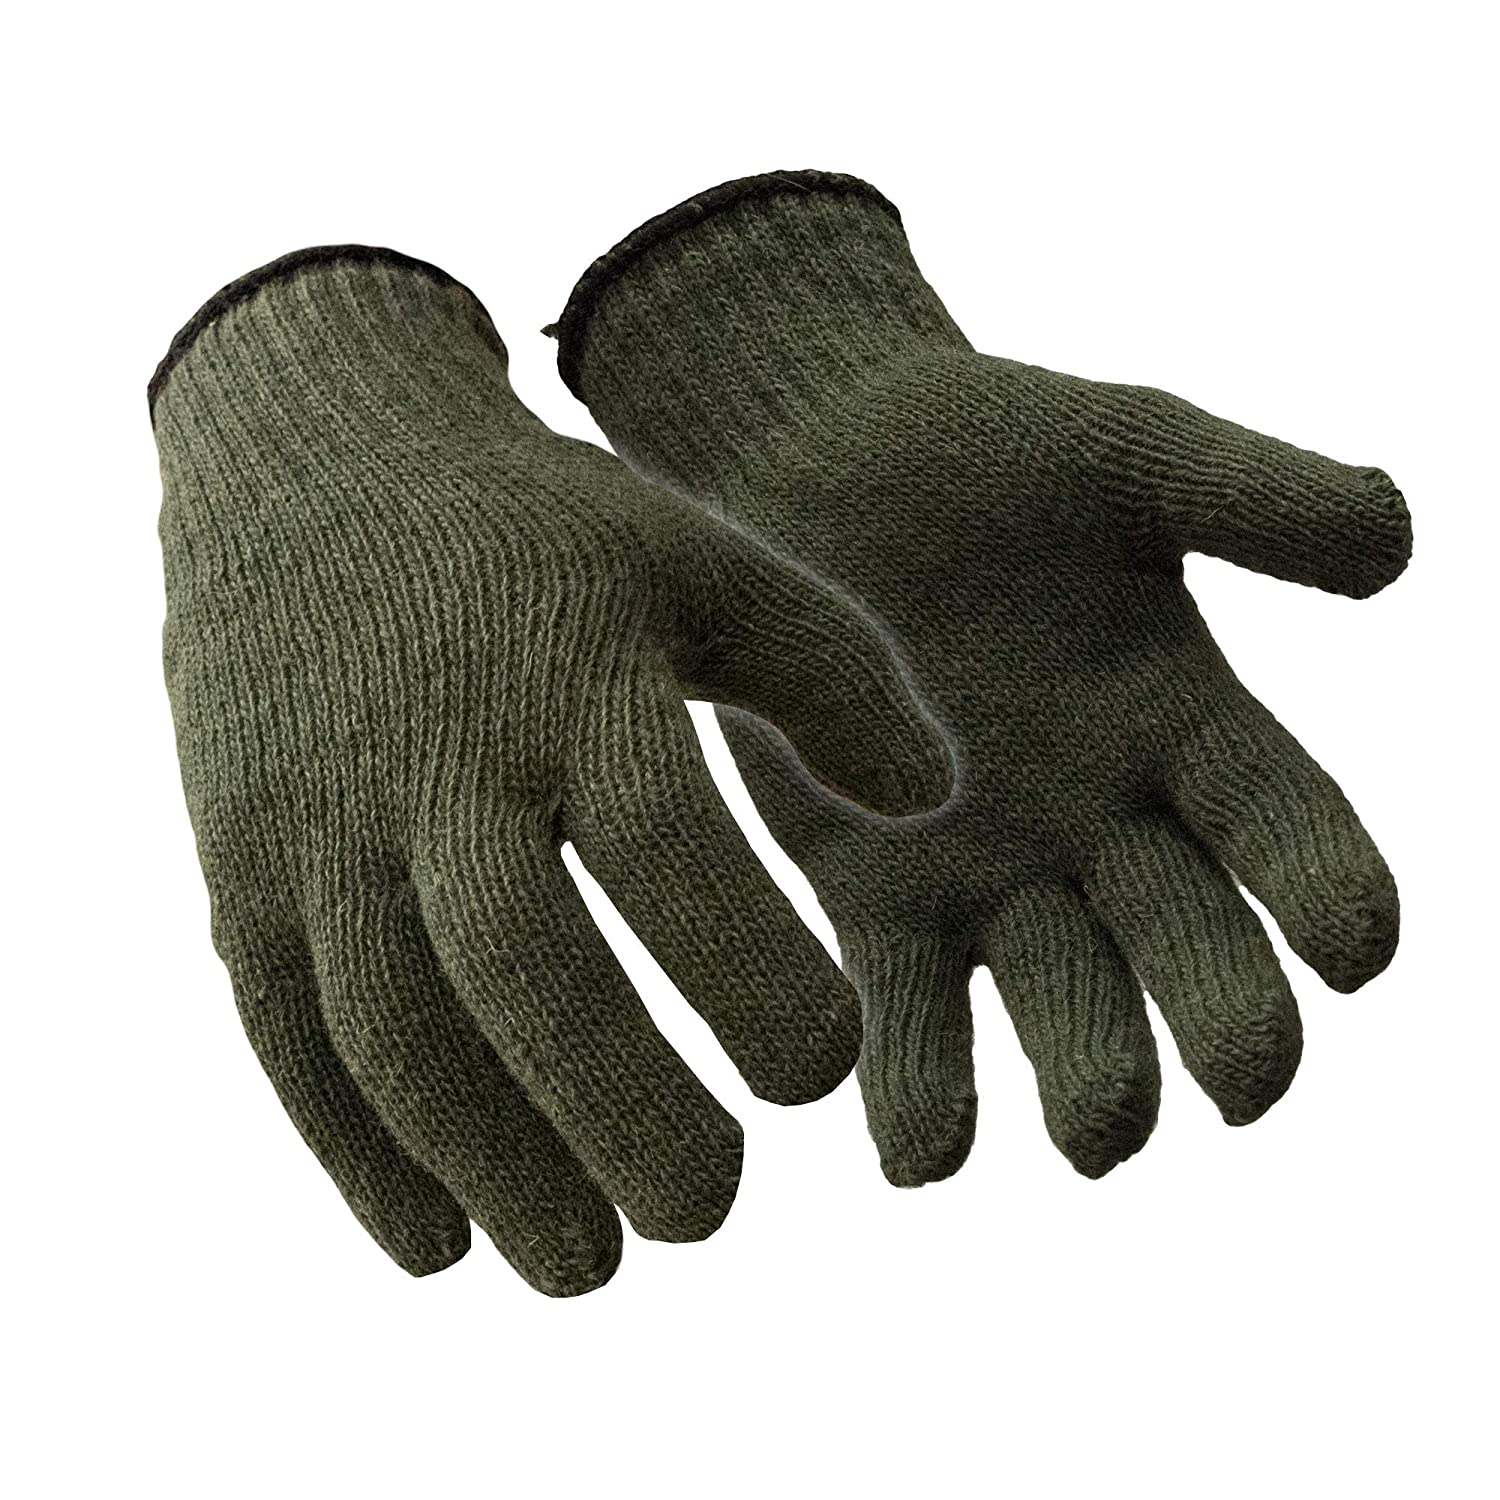 Green RefrigiWear Military Style Ragg Wool Glove Liners PACK OF 12 PAIRS